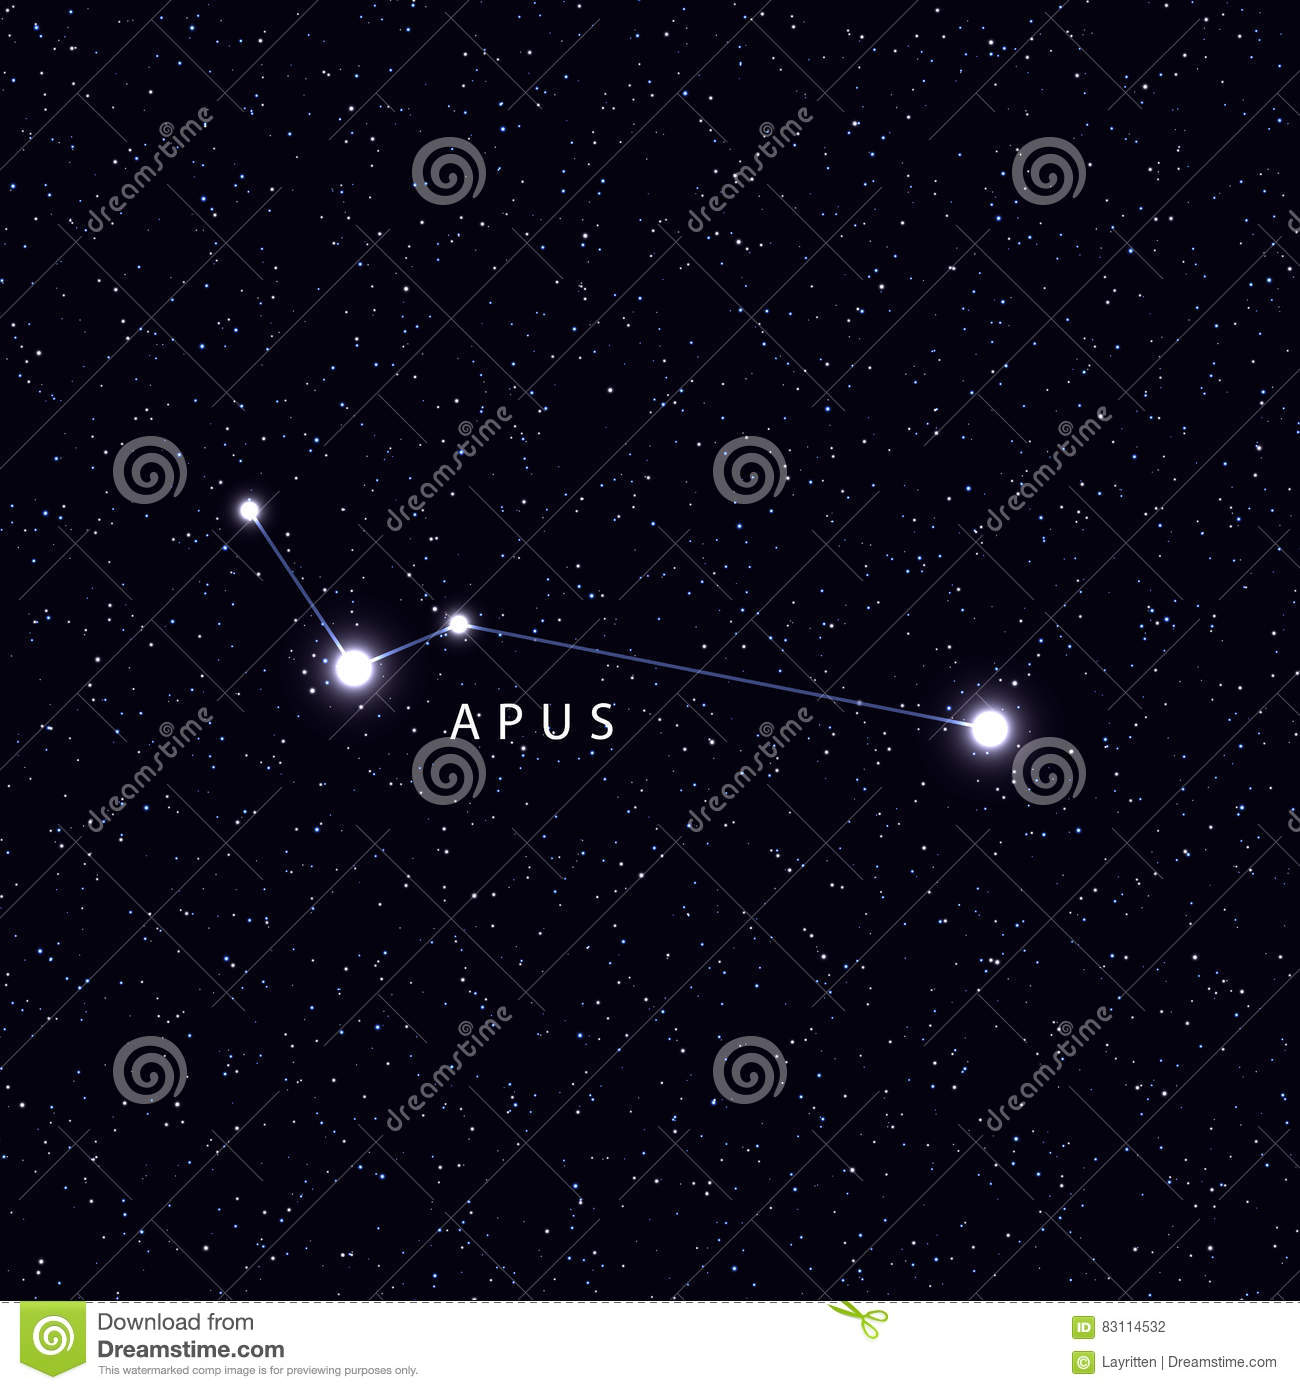 Sky Map With The Name Of The Stars And Constellations. Stock Vector ...